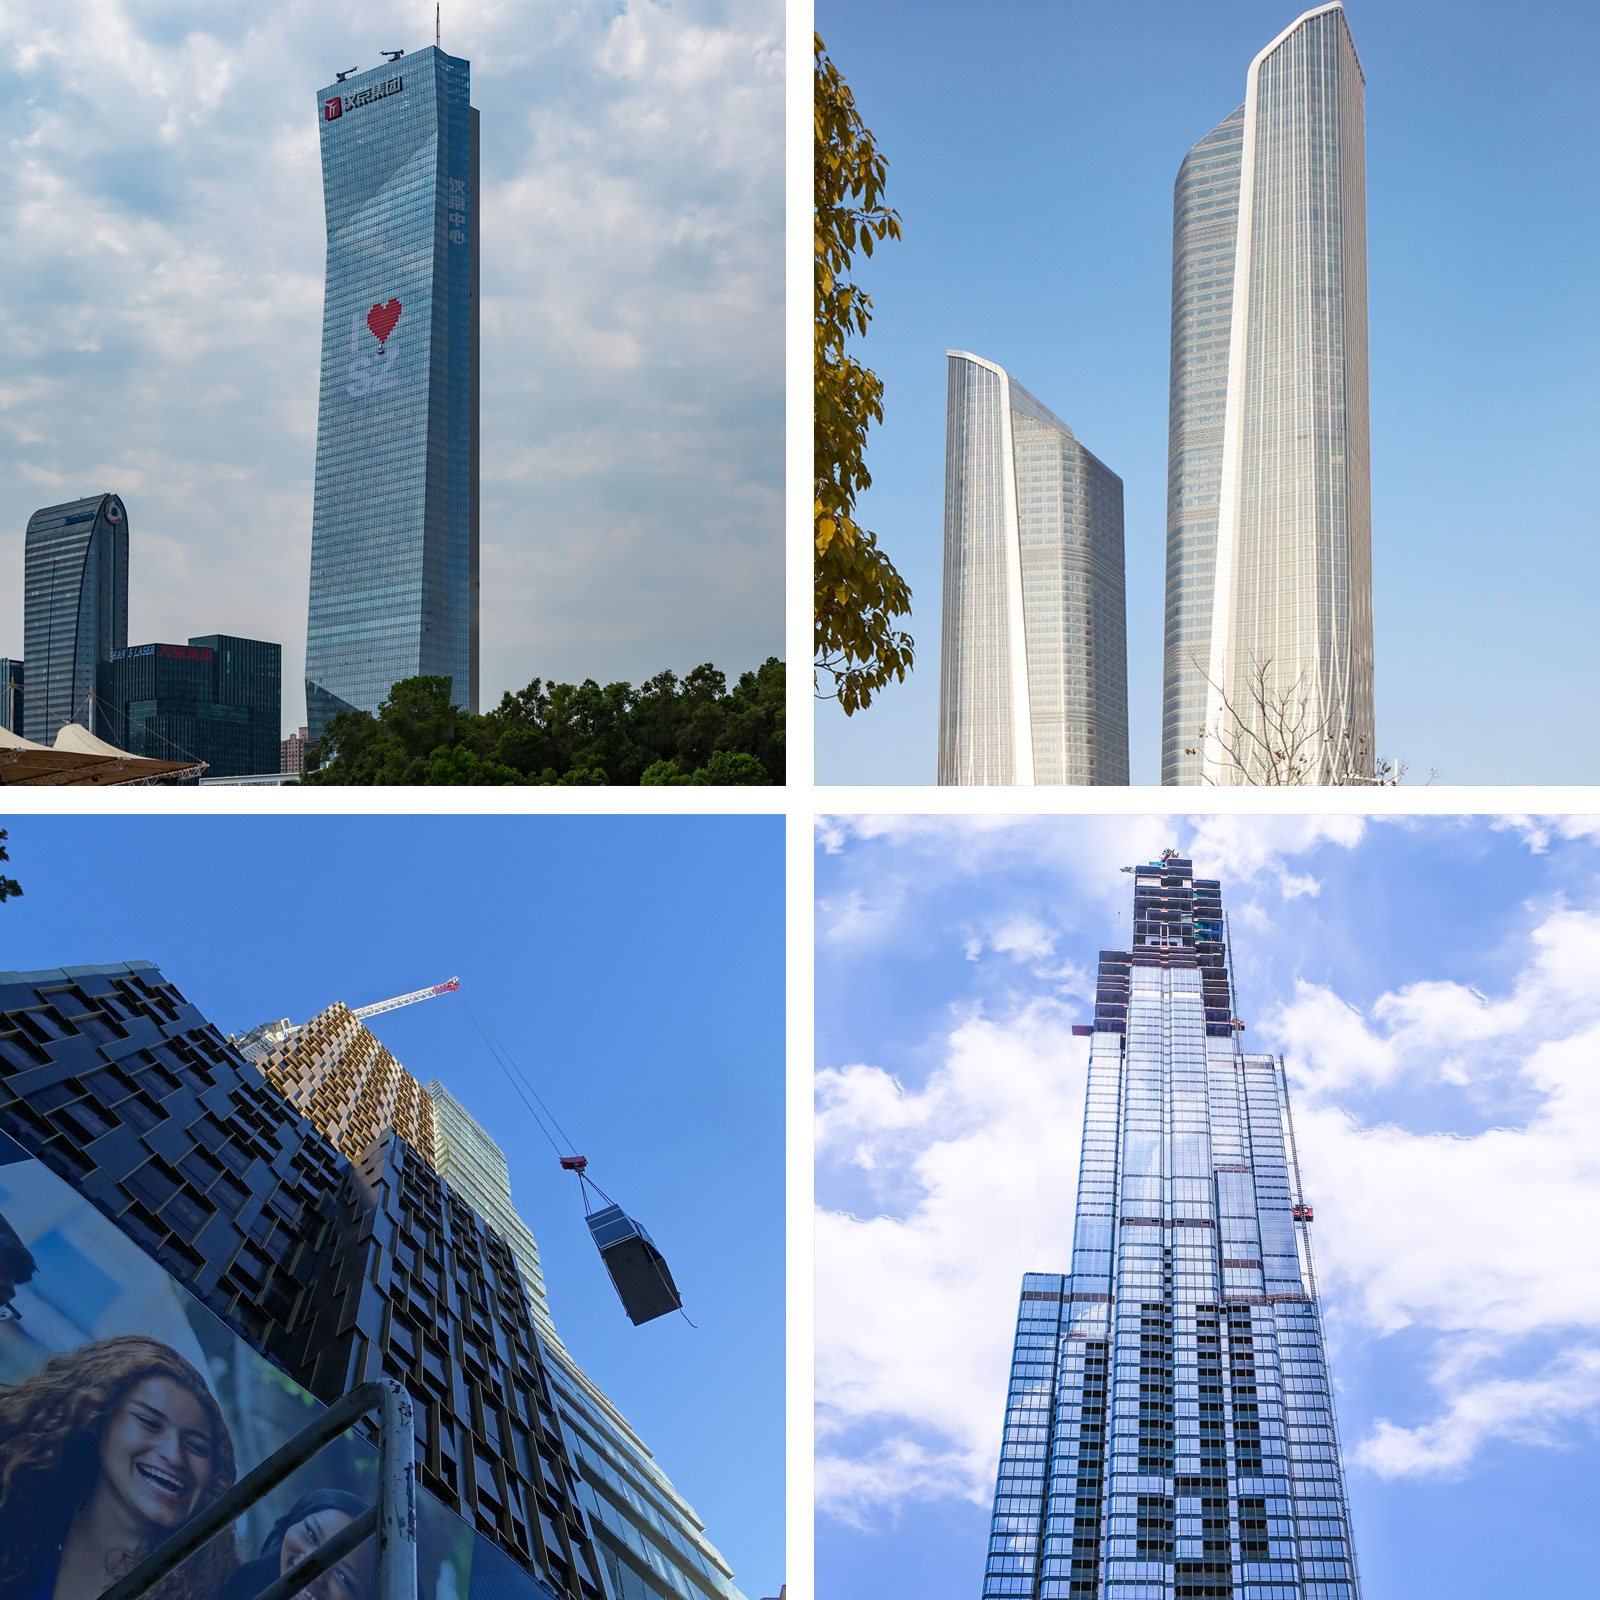 Hanking Center Tower - Shenzhen (top left), Jumeirah Nanjing Hotel - Nanjing (top right), La Trobe Street Student Accomodation - Melbourne (bottom left), Vincom Landmark 81 - Ho Chi Ming City (bottom right).